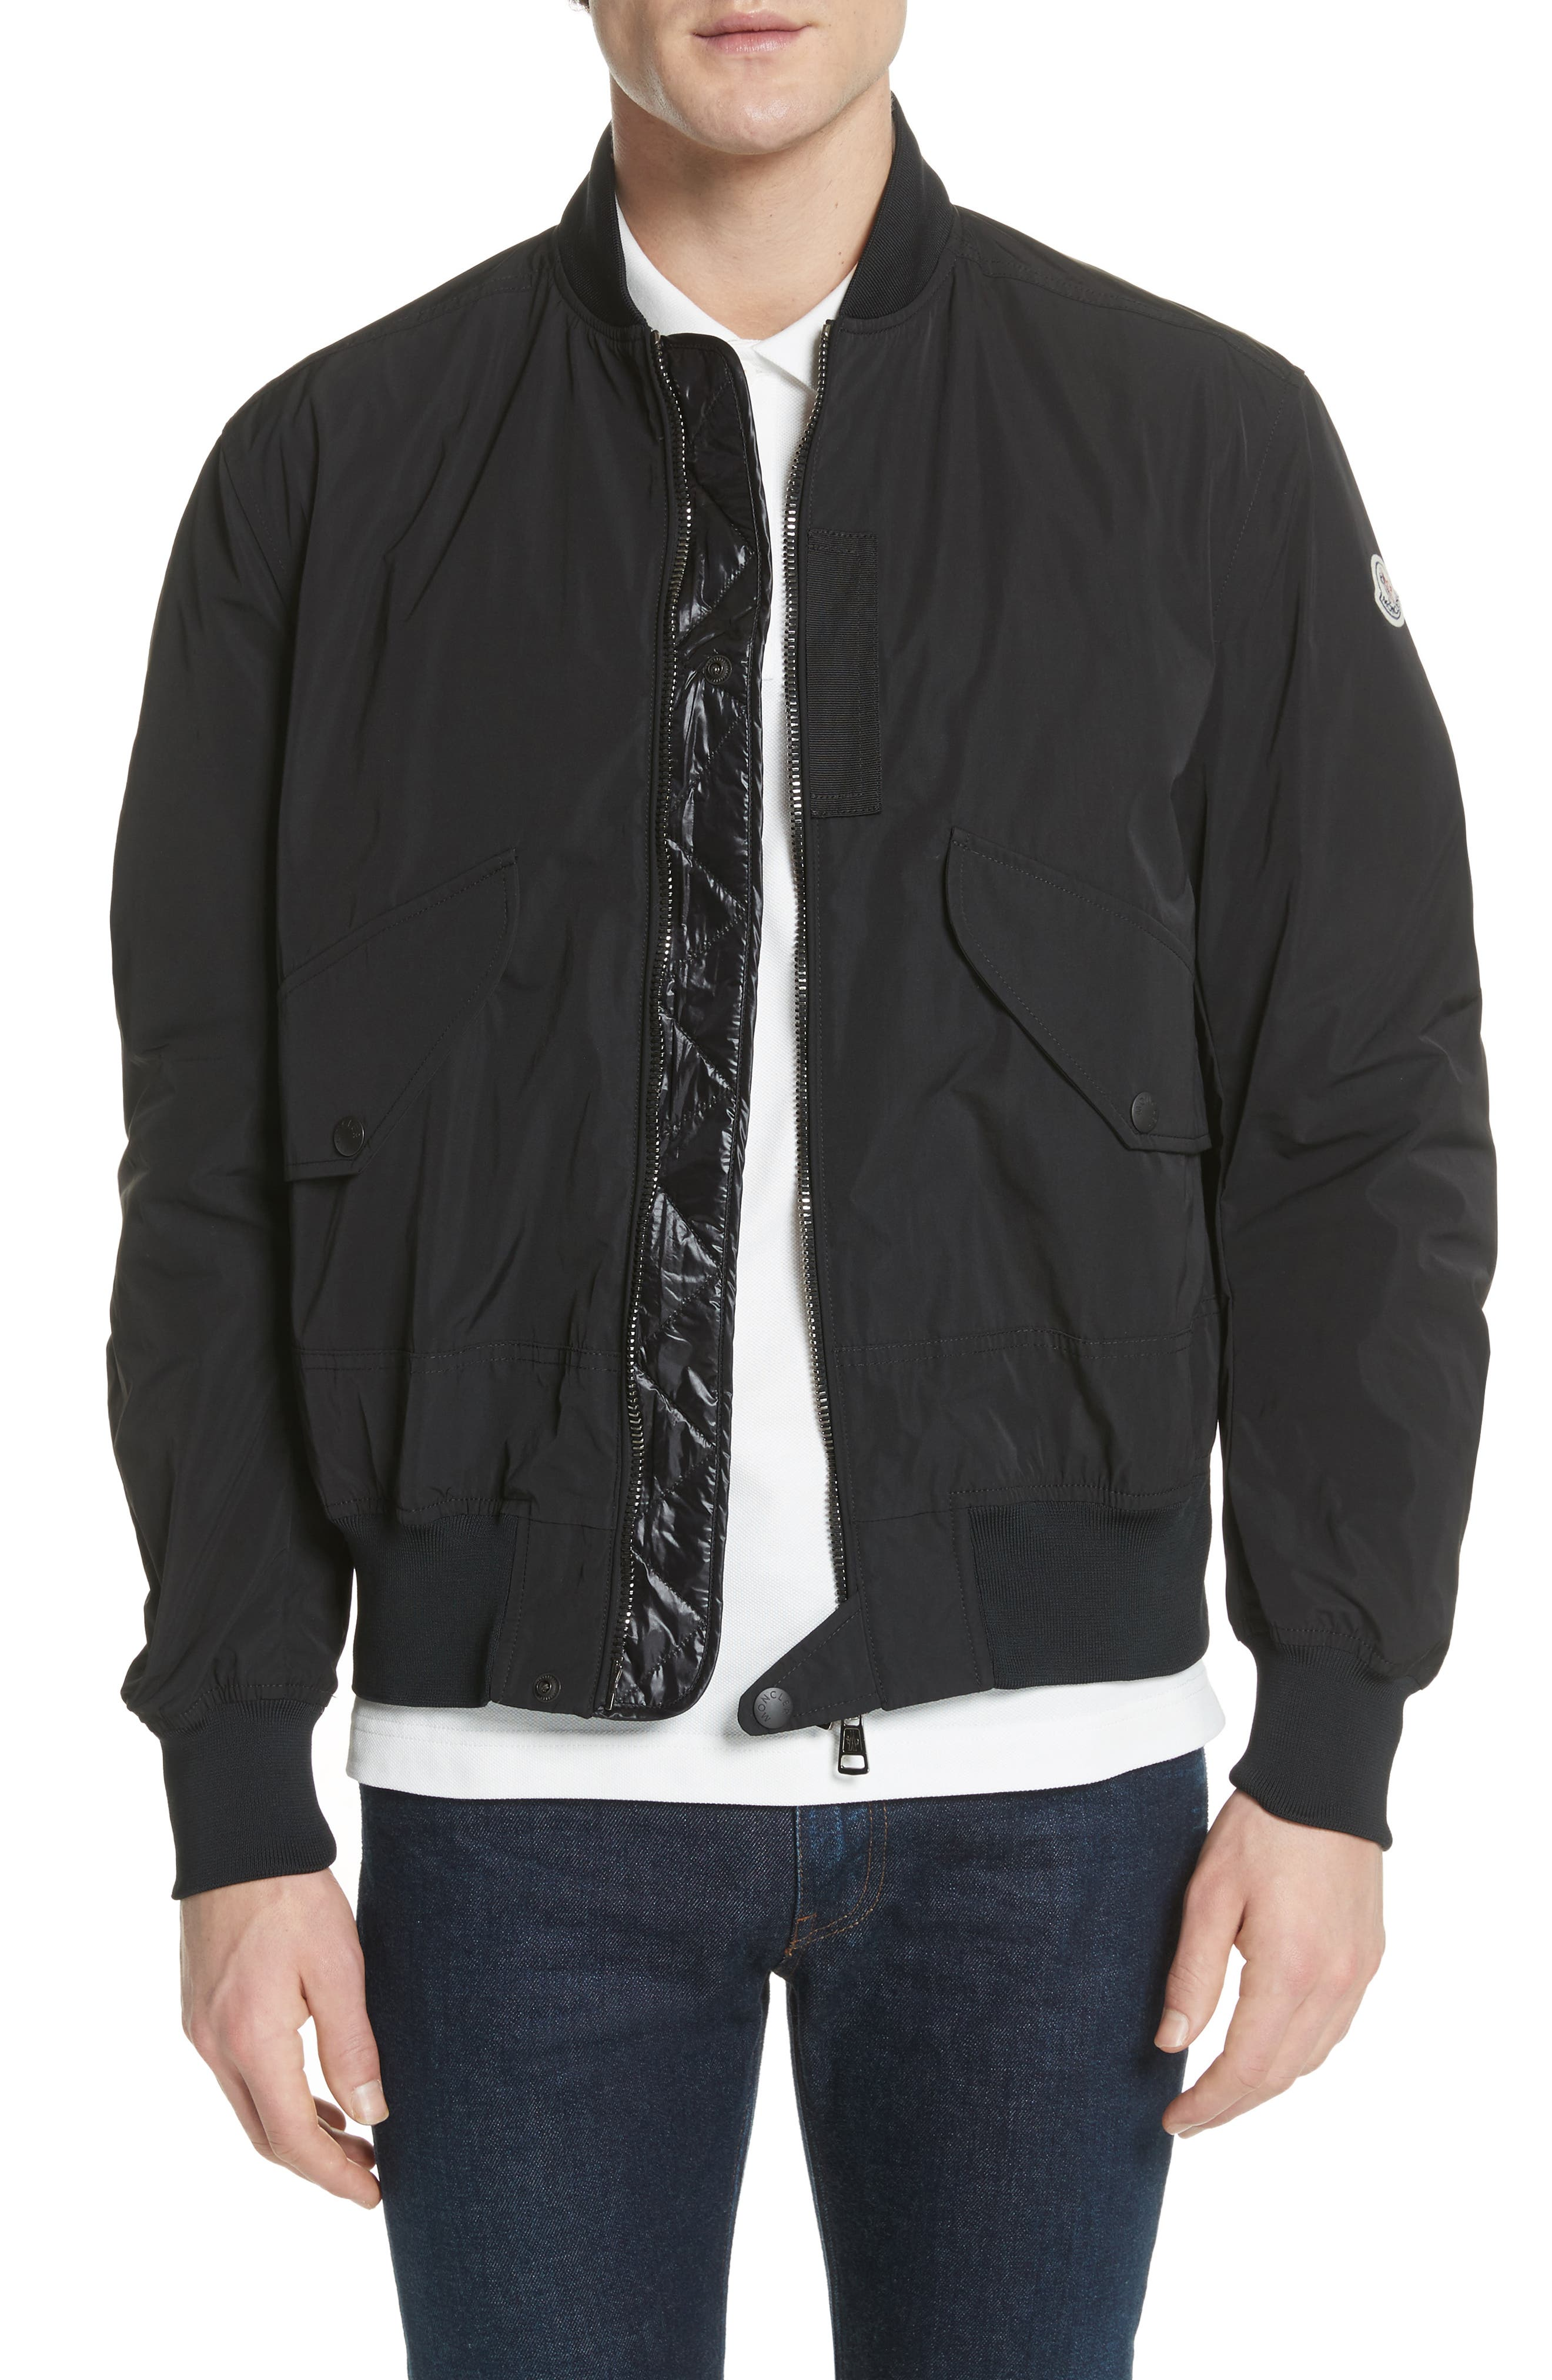 Artouste Bomber Jacket,                             Alternate thumbnail 4, color,                             001